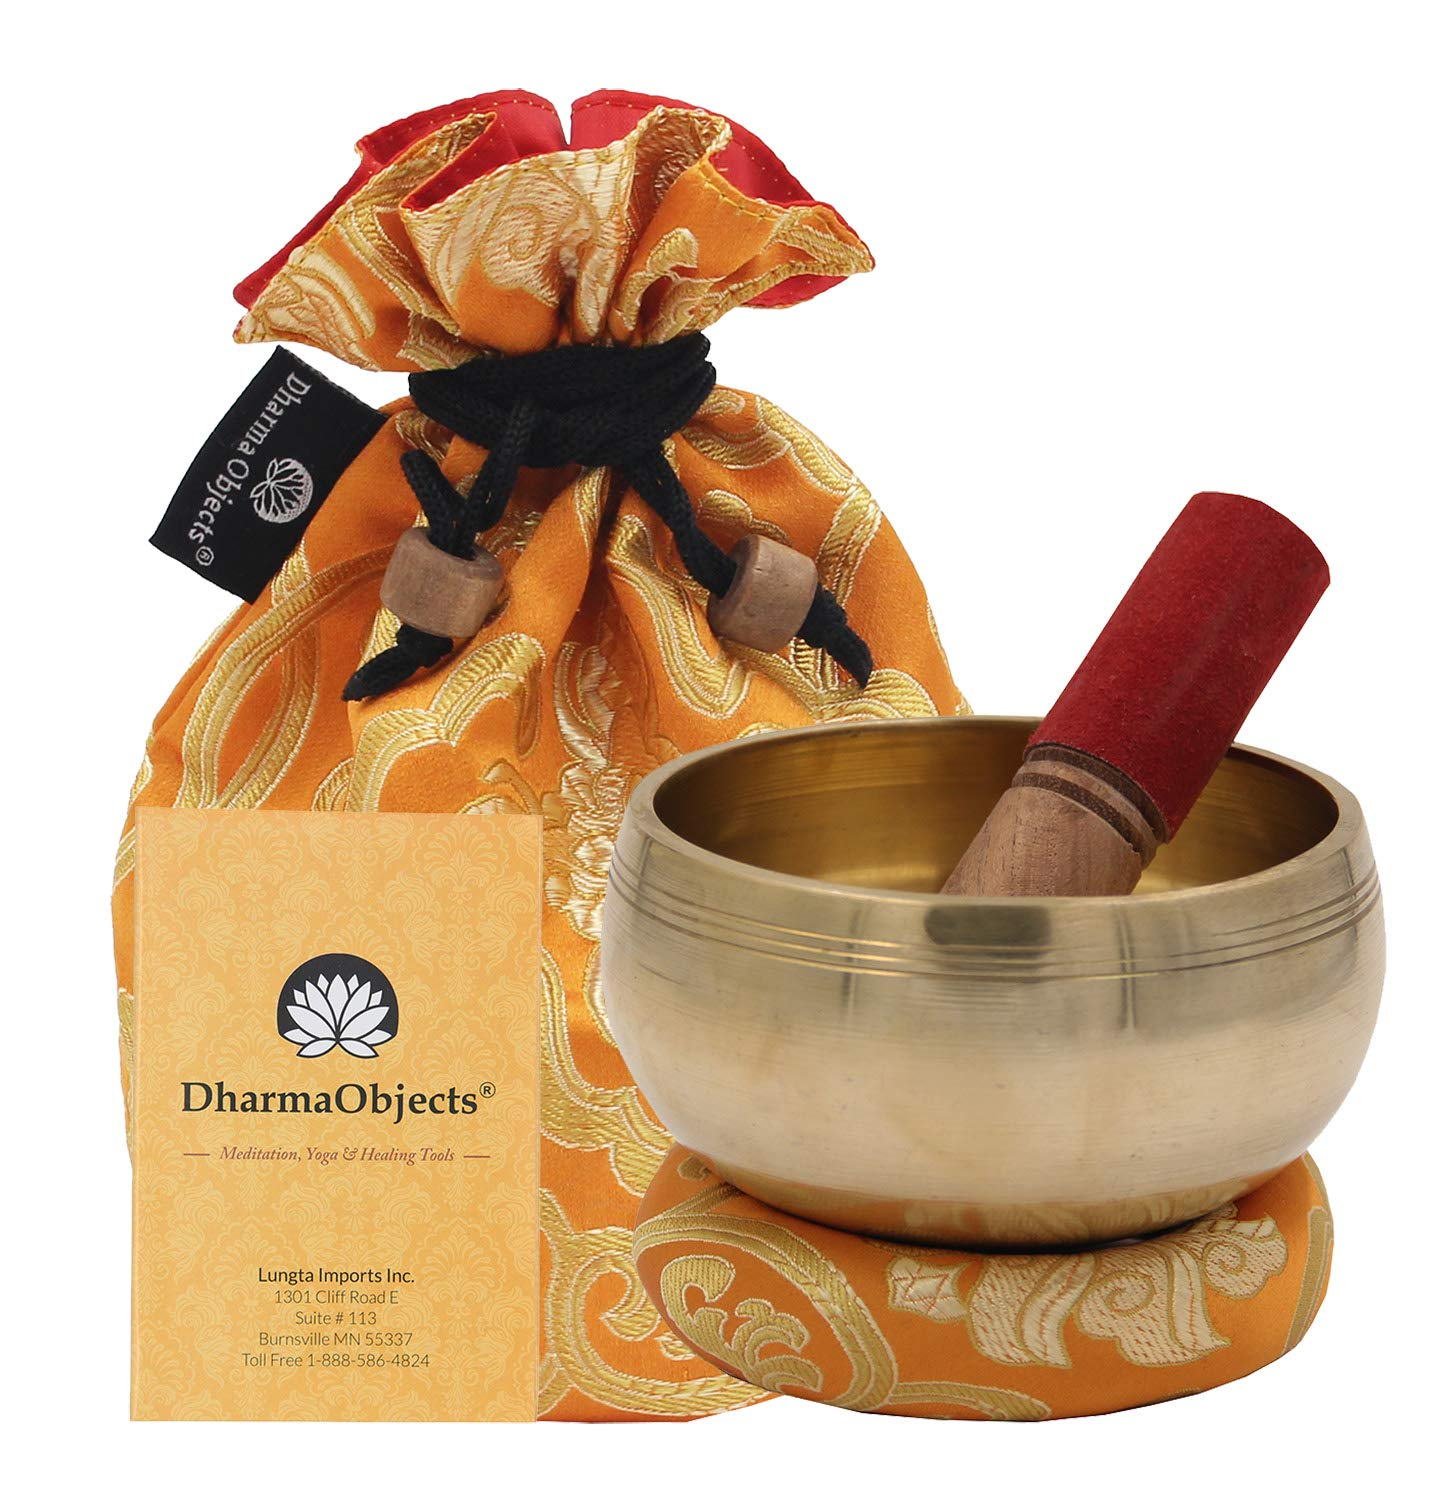 DharmaObjects Medium ~ Tibetan OM MANI Singing Bowl Set ~ With Mallet, Brocade Cushion & Carry Bag ~ For Meditation, Chakra Healing, Prayer, Yoga (Yellow) by DharmaObjects